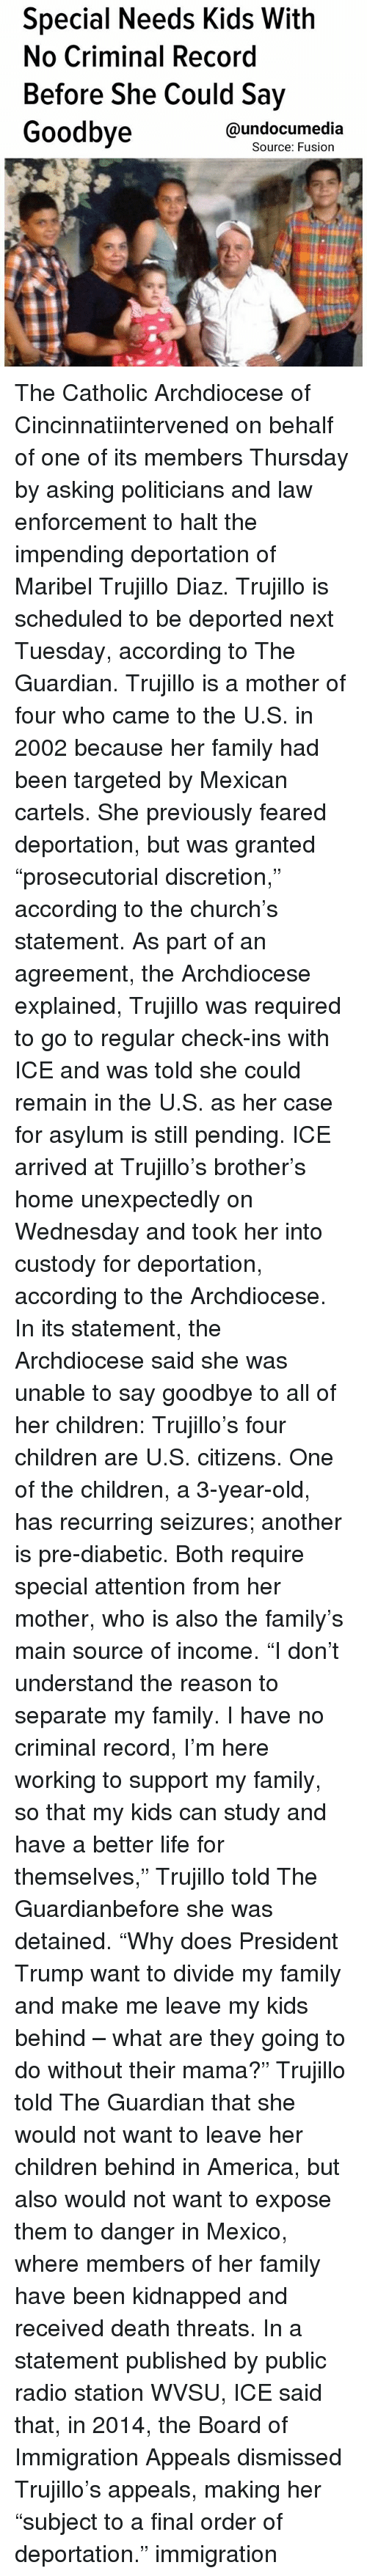 """Discretion: Special Needs Kids With  No Criminal Record  Before She Could Say  Goodbye  @undocumedia  Source: Fusion The Catholic Archdiocese of Cincinnatiintervened on behalf of one of its members Thursday by asking politicians and law enforcement to halt the impending deportation of Maribel Trujillo Diaz. Trujillo is scheduled to be deported next Tuesday, according to The Guardian. Trujillo is a mother of four who came to the U.S. in 2002 because her family had been targeted by Mexican cartels. She previously feared deportation, but was granted """"prosecutorial discretion,"""" according to the church's statement. As part of an agreement, the Archdiocese explained, Trujillo was required to go to regular check-ins with ICE and was told she could remain in the U.S. as her case for asylum is still pending. ICE arrived at Trujillo's brother's home unexpectedly on Wednesday and took her into custody for deportation, according to the Archdiocese. In its statement, the Archdiocese said she was unable to say goodbye to all of her children: Trujillo's four children are U.S. citizens. One of the children, a 3-year-old, has recurring seizures; another is pre-diabetic. Both require special attention from her mother, who is also the family's main source of income. """"I don't understand the reason to separate my family. I have no criminal record, I'm here working to support my family, so that my kids can study and have a better life for themselves,"""" Trujillo told The Guardianbefore she was detained. """"Why does President Trump want to divide my family and make me leave my kids behind – what are they going to do without their mama?"""" Trujillo told The Guardian that she would not want to leave her children behind in America, but also would not want to expose them to danger in Mexico, where members of her family have been kidnapped and received death threats. In a statement published by public radio station WVSU, ICE said that, in 2014, the Board of Immigration Appeals dismissed Trujillo's a"""